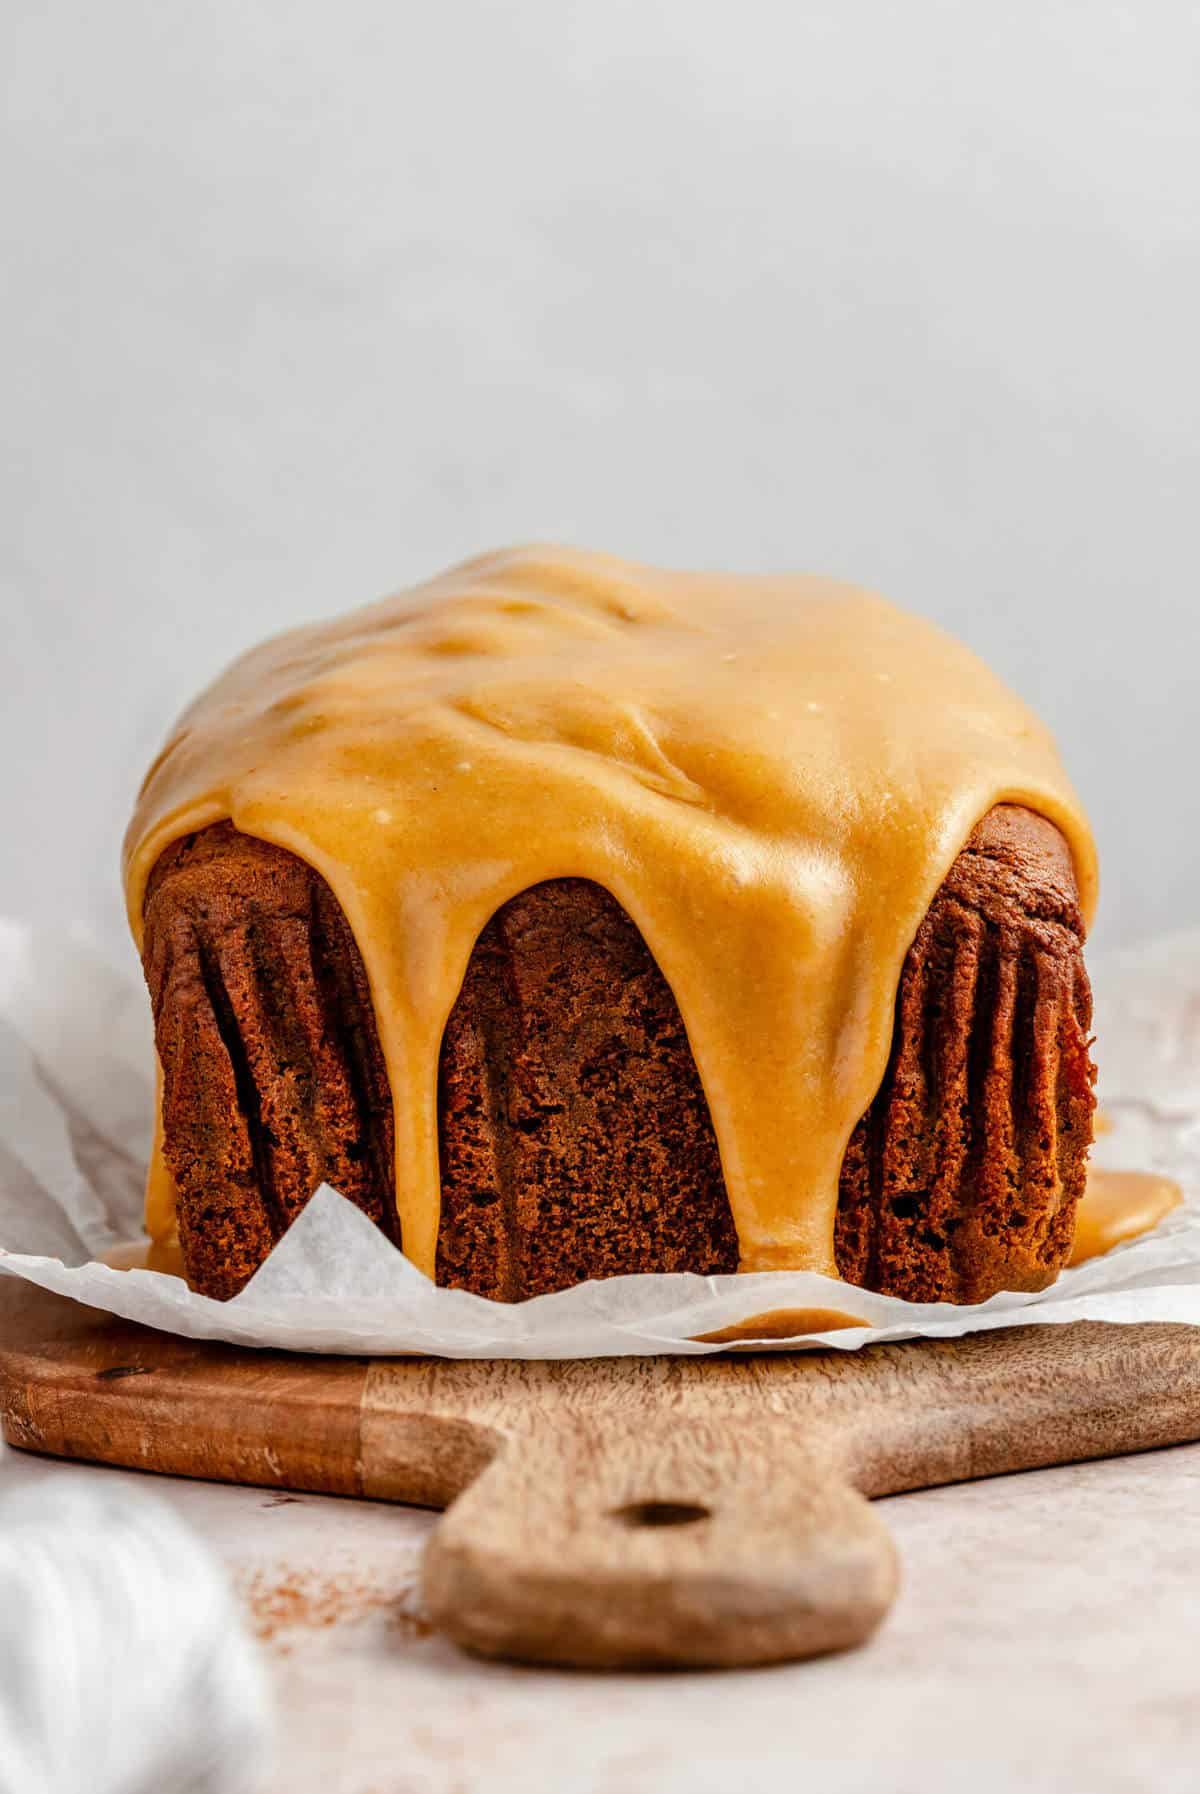 photo of the gingerbread with brown butter caramel glaze dripping over the edge